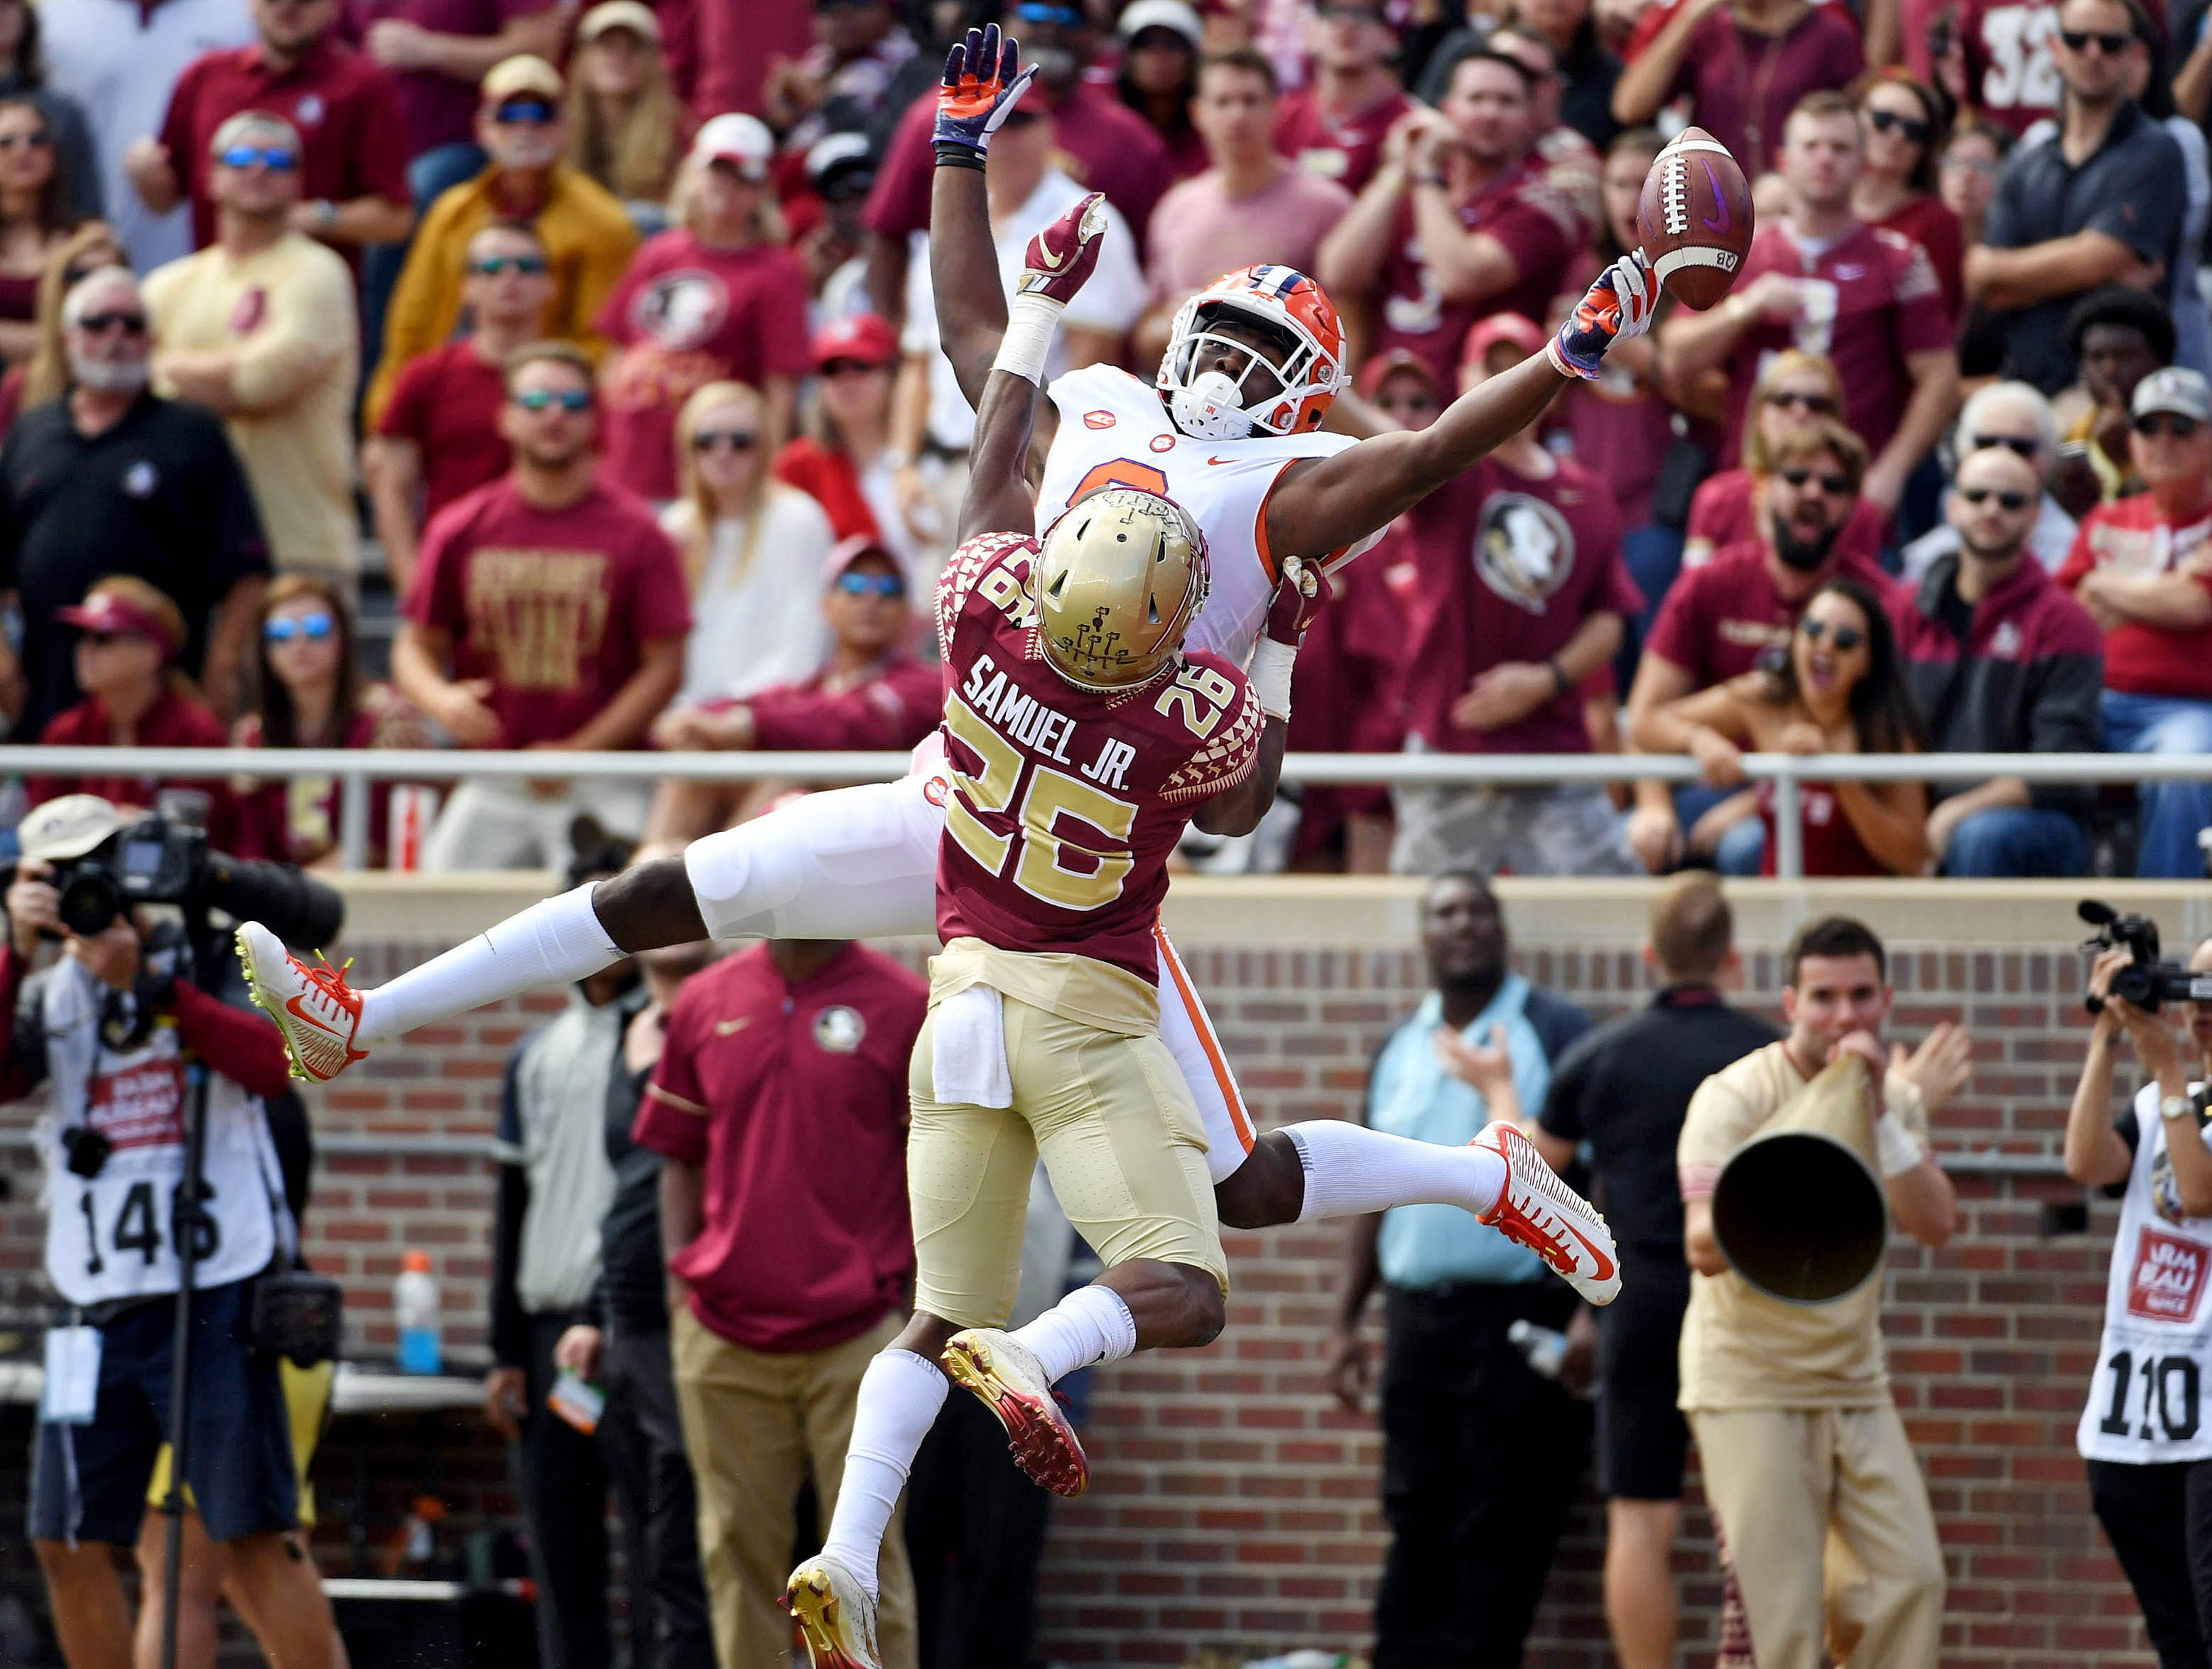 Oct 27, 2018; Tallahassee, FL, USA; Clemson Tigers wide receiver Justyn Ross (8) misses a pass for a touchdown as Florida State Seminoles defensive back Asante Samuel Jr. (26) defends during the first half at Doak Campbell Stadium. Mandatory Credit: Melina Myers-USA TODAY Sports